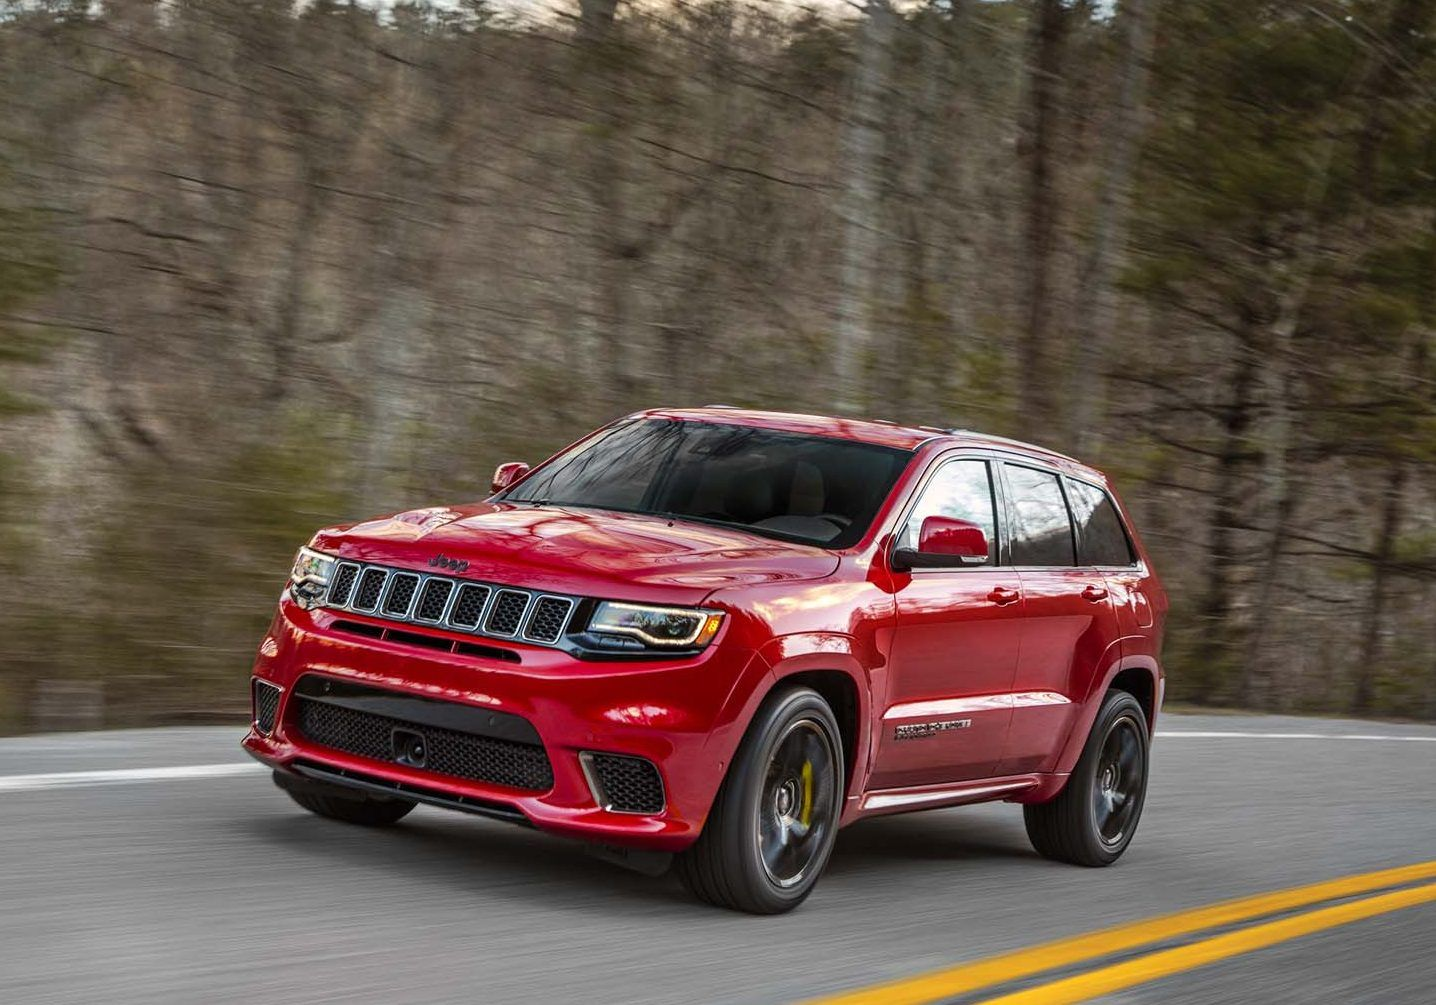 2018 Jeep Grand Cherokee Trackhawk With 707hp Hellcat Engine Is An Suv On Steroids Jeep Grand Cherokee Grand Cherokee Overland Jeep Grand